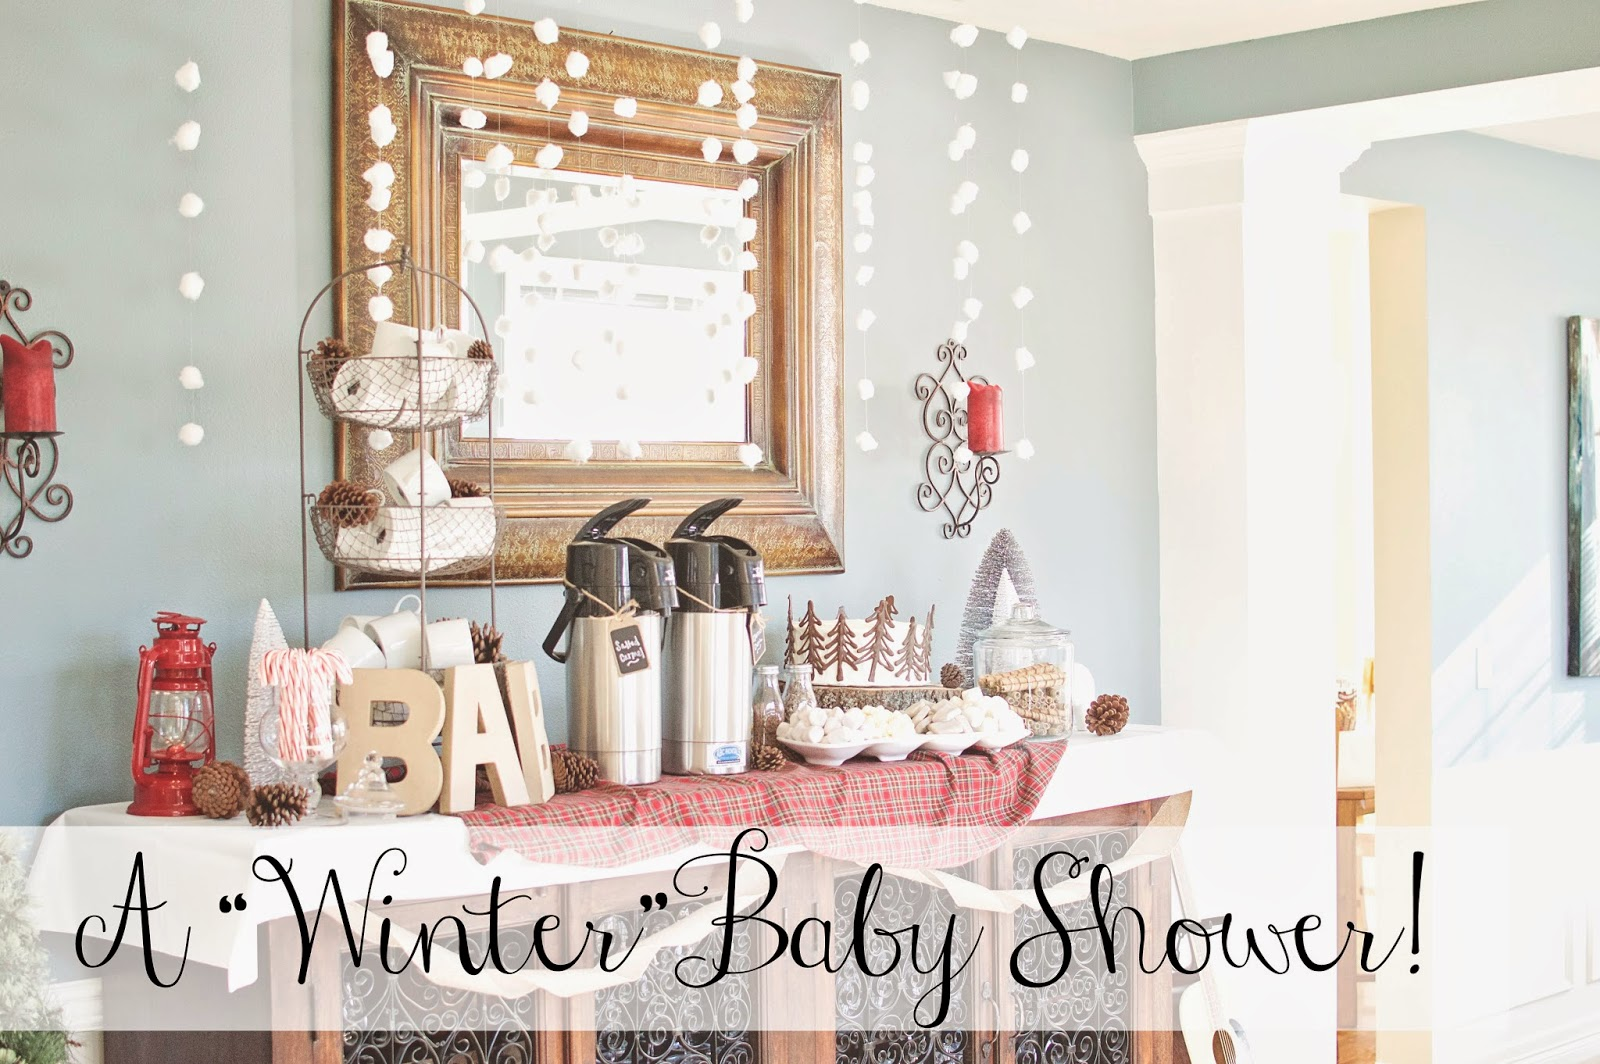 A WINTER THEMED BABY SHOWER